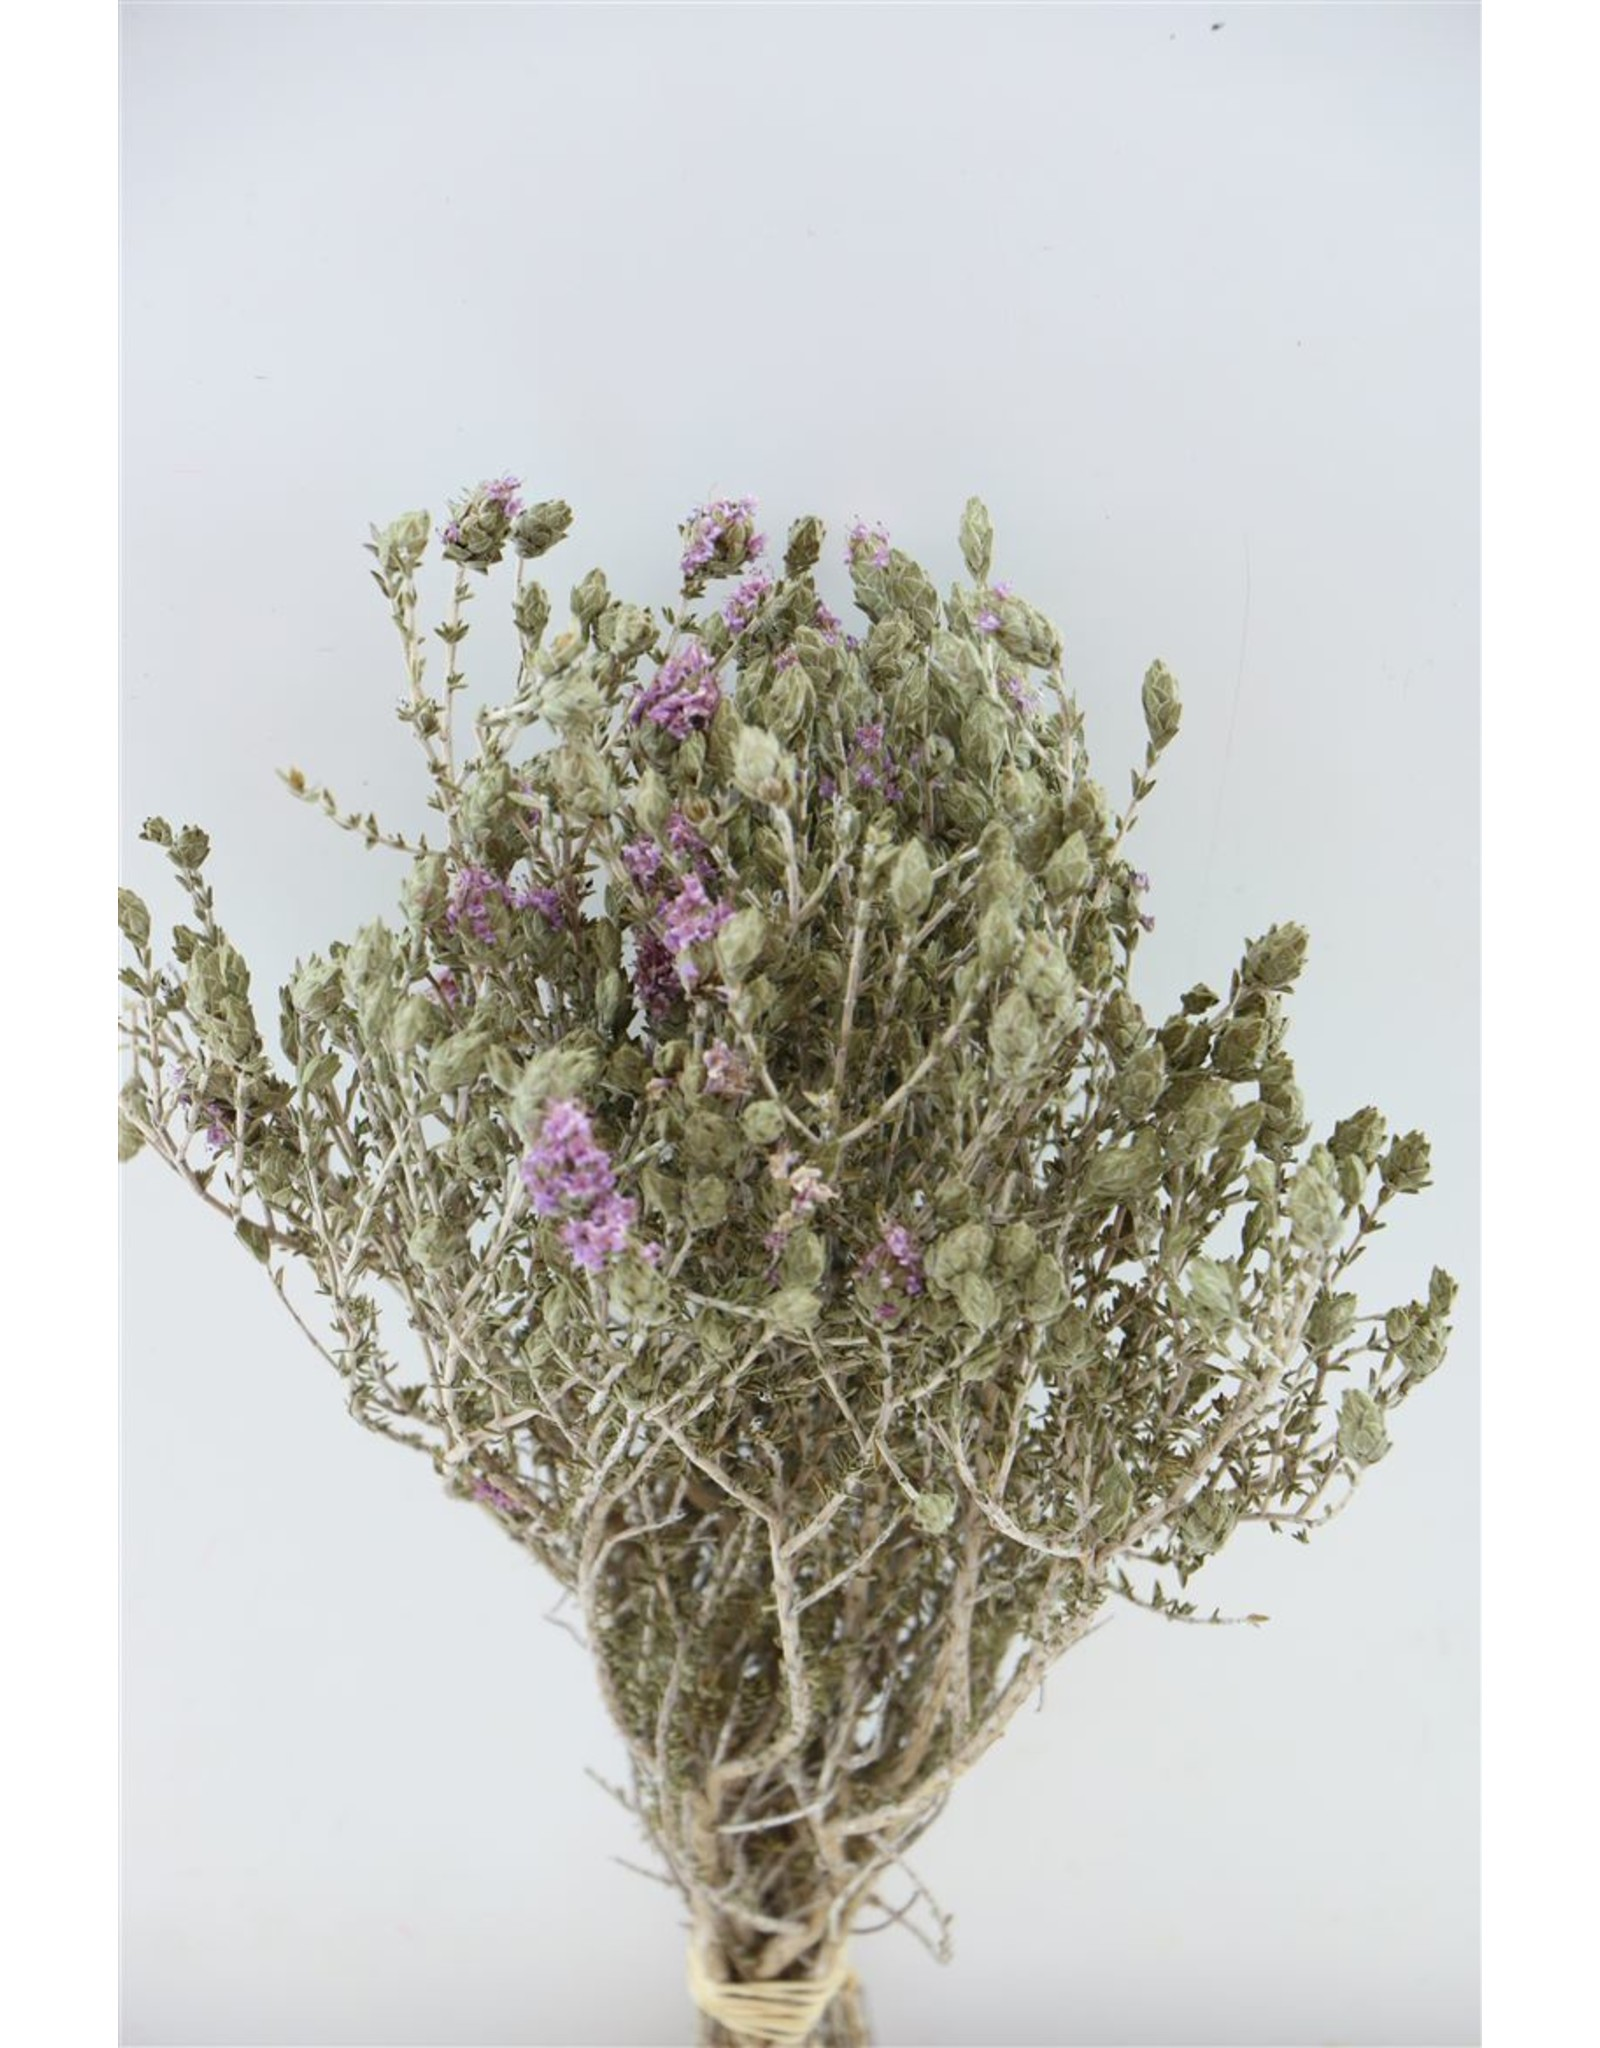 Dried Blooming Thyme L. Blue Bunch x 2